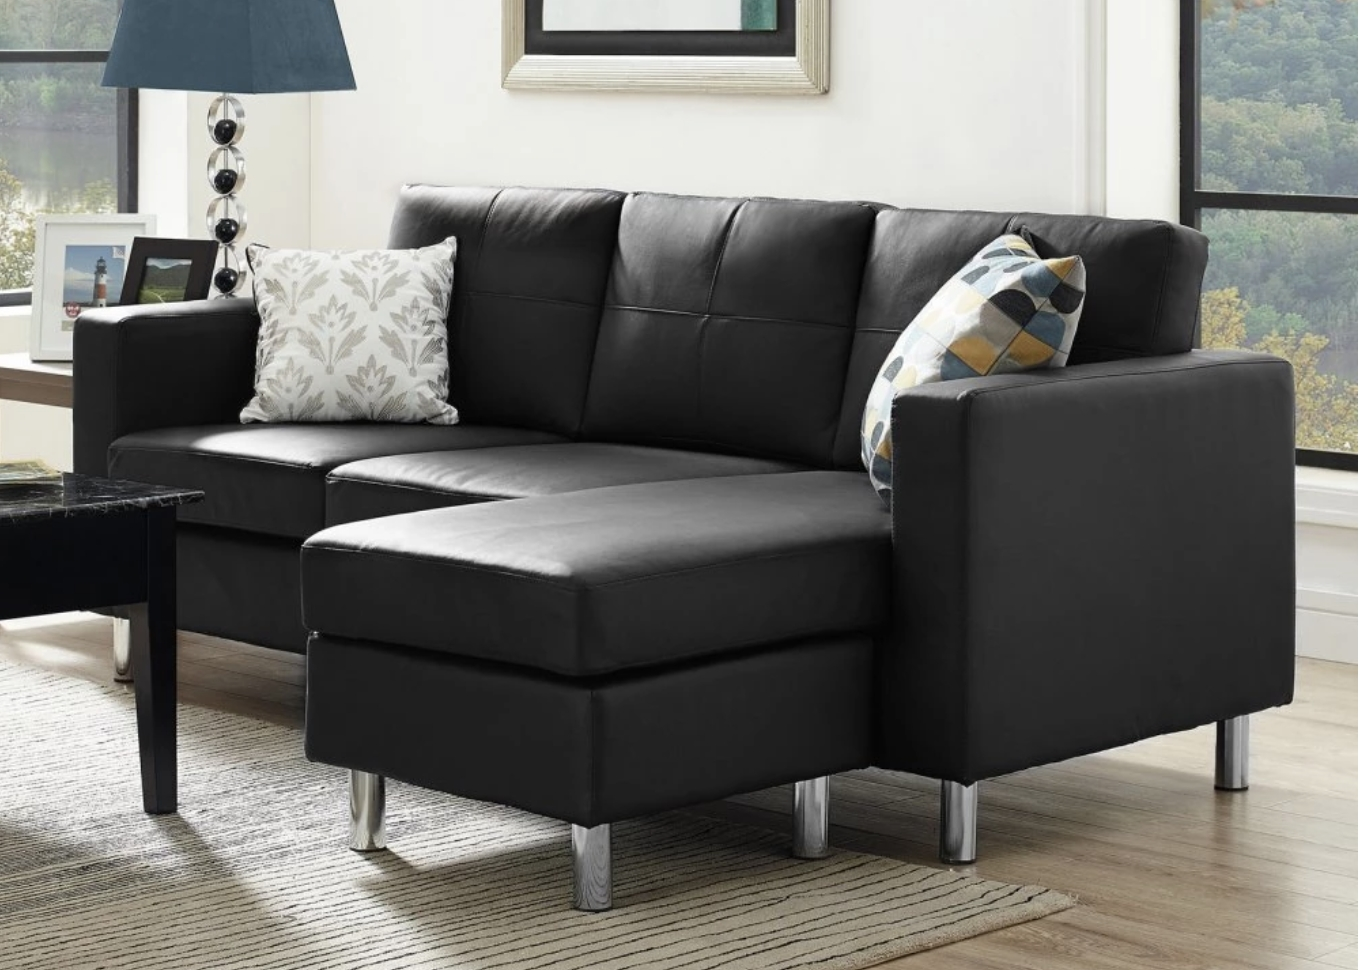 Best And Newest 75 Modern Sectional Sofas For Small Spaces (2018) Inside Sectional Sofas For Small Places (View 6 of 15)